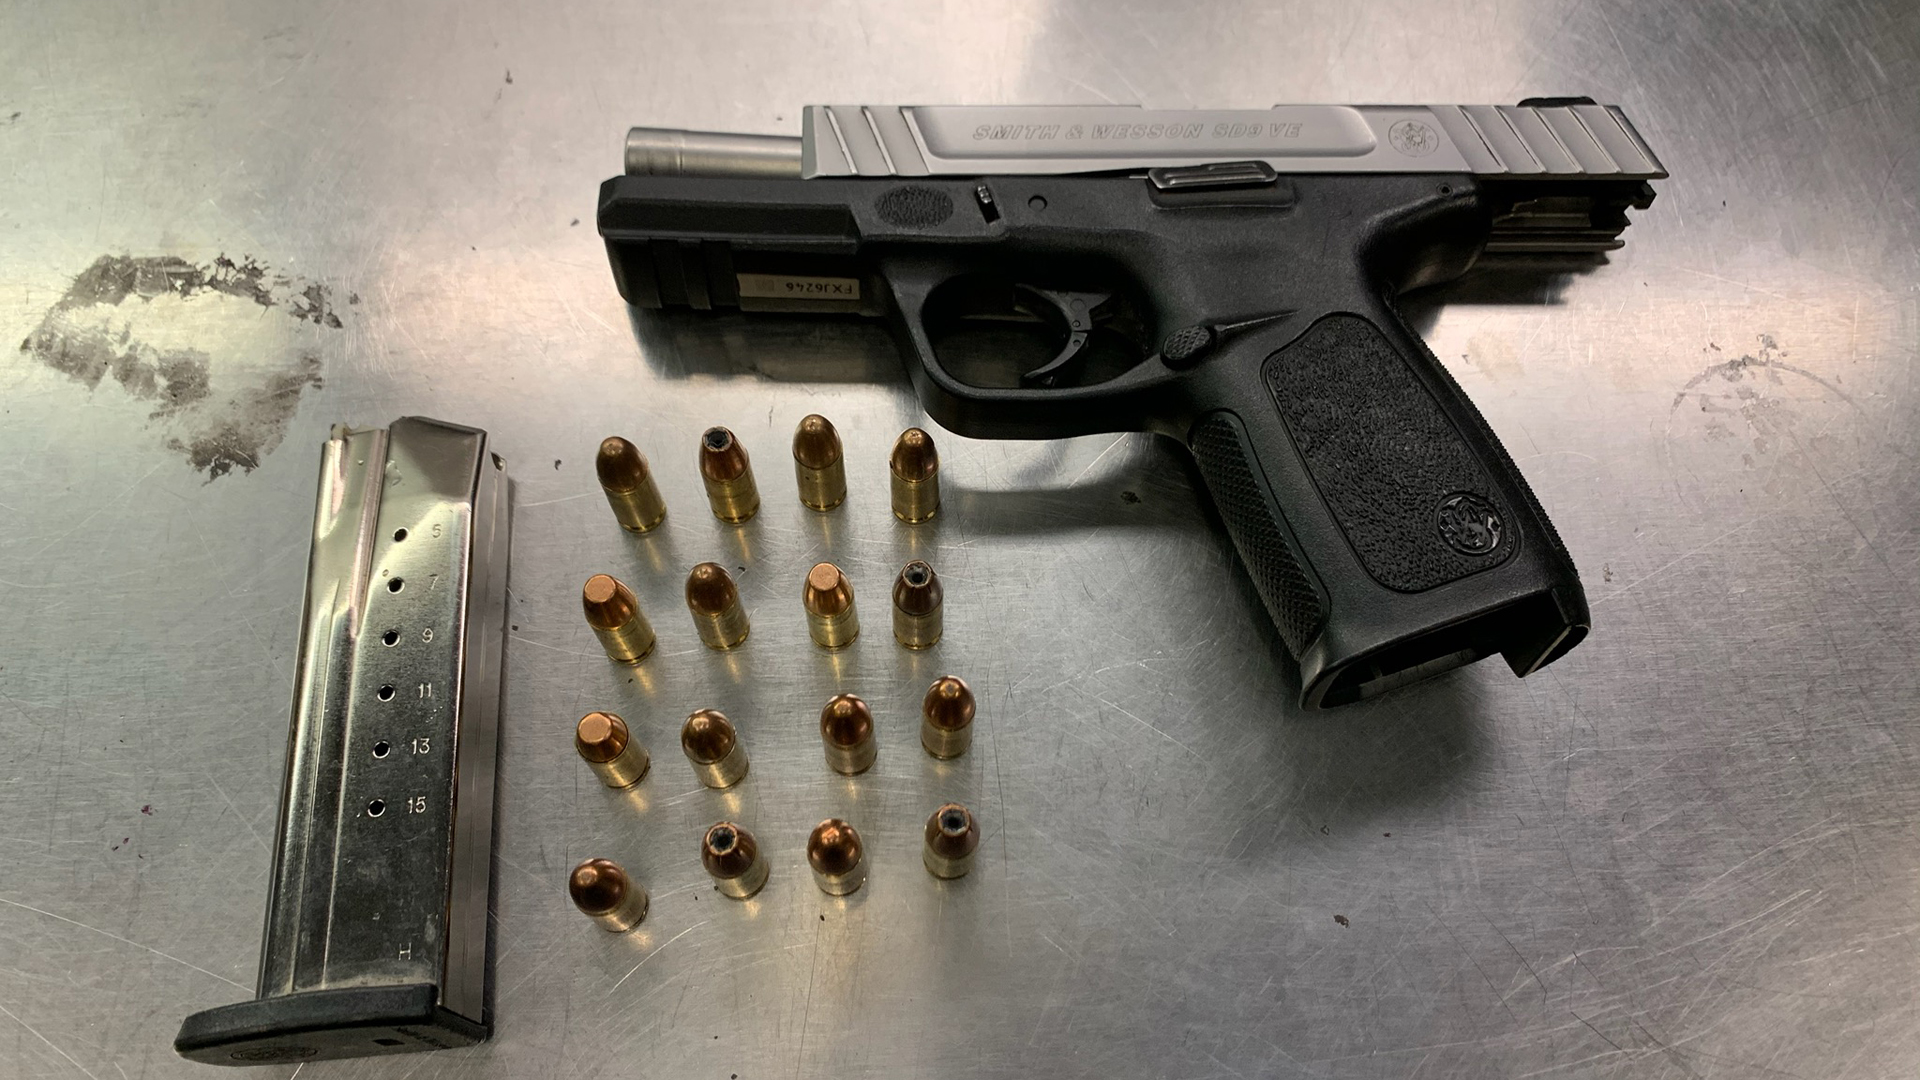 Police seized a stolen, loaded handgun from a documented gang member and convicted murderer during a traffic stop in Pomona on Feb. 29, 2020. (Credit: Pomona Police Department)